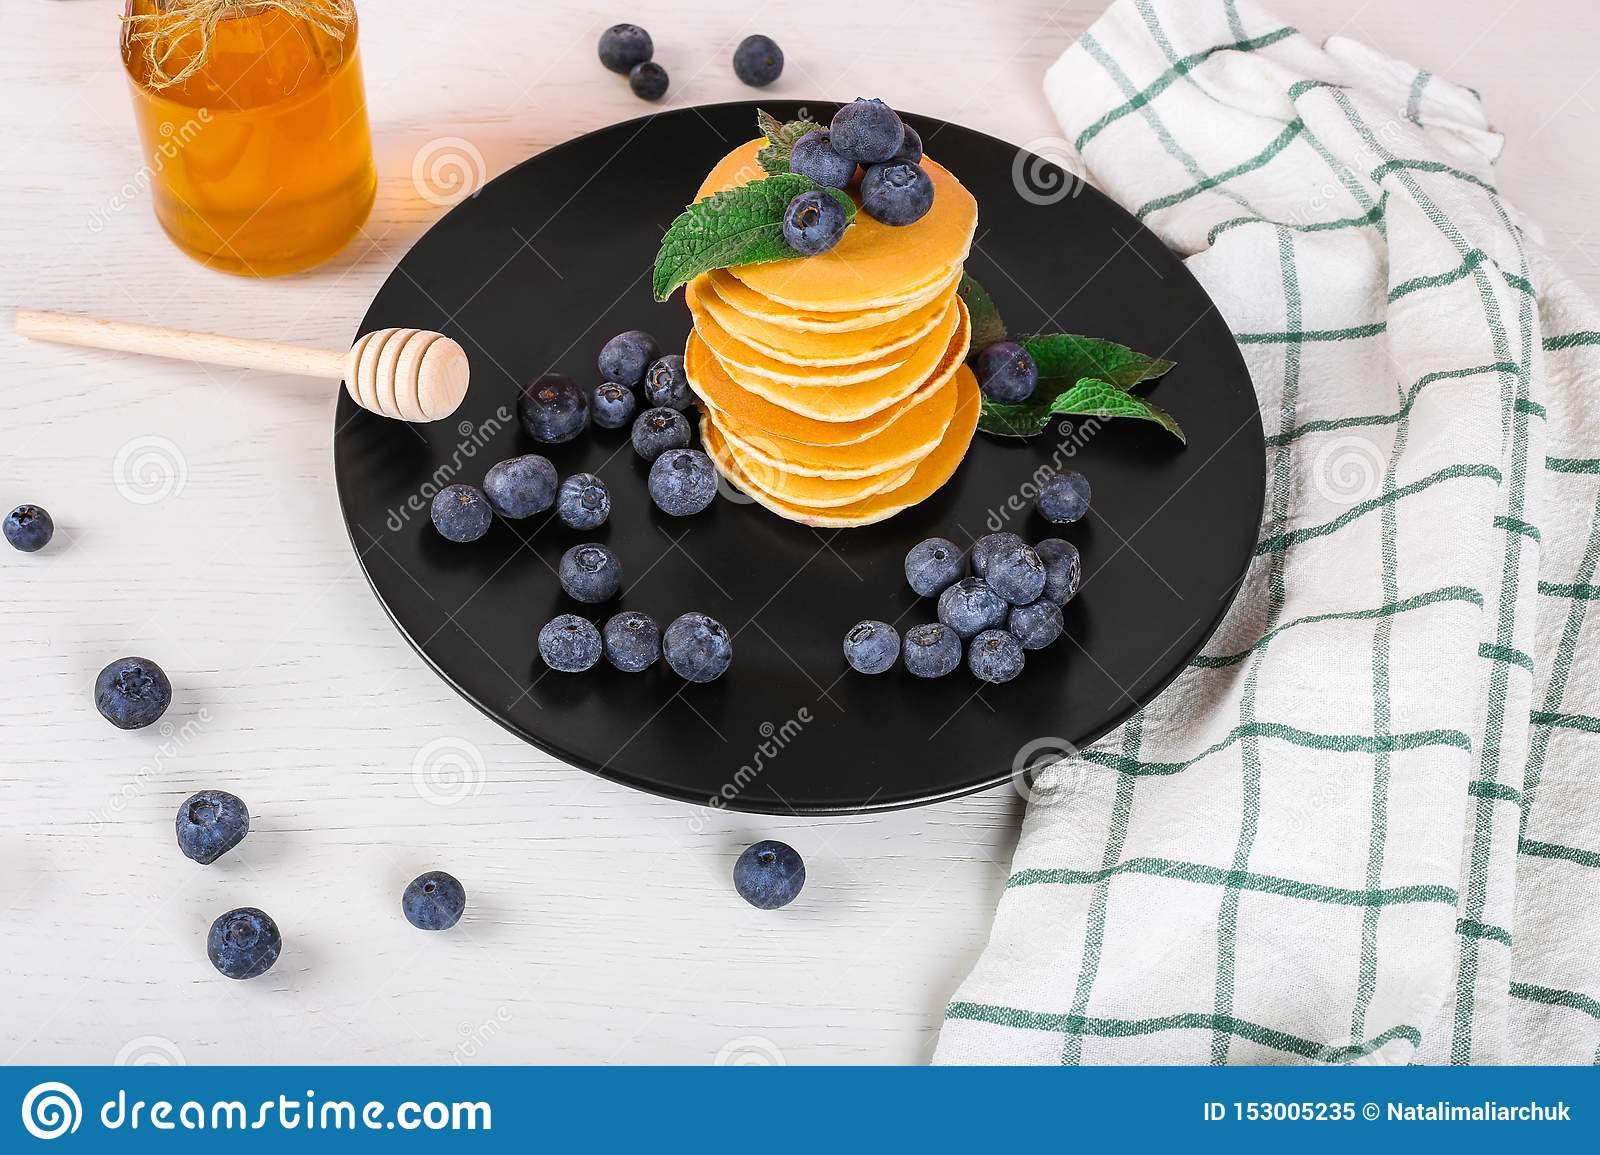 Image shows a homemade fluffy pancake with blueberry and mint on the top; situation is decorated with white wooden table and honey